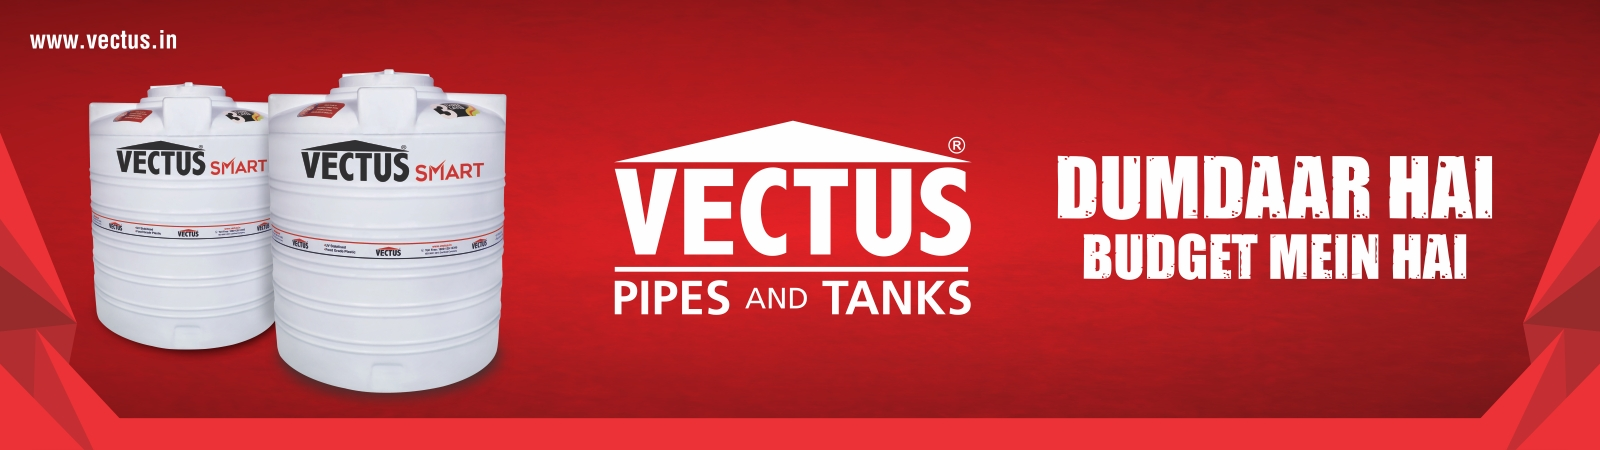 Vectus Pipes and Tanks